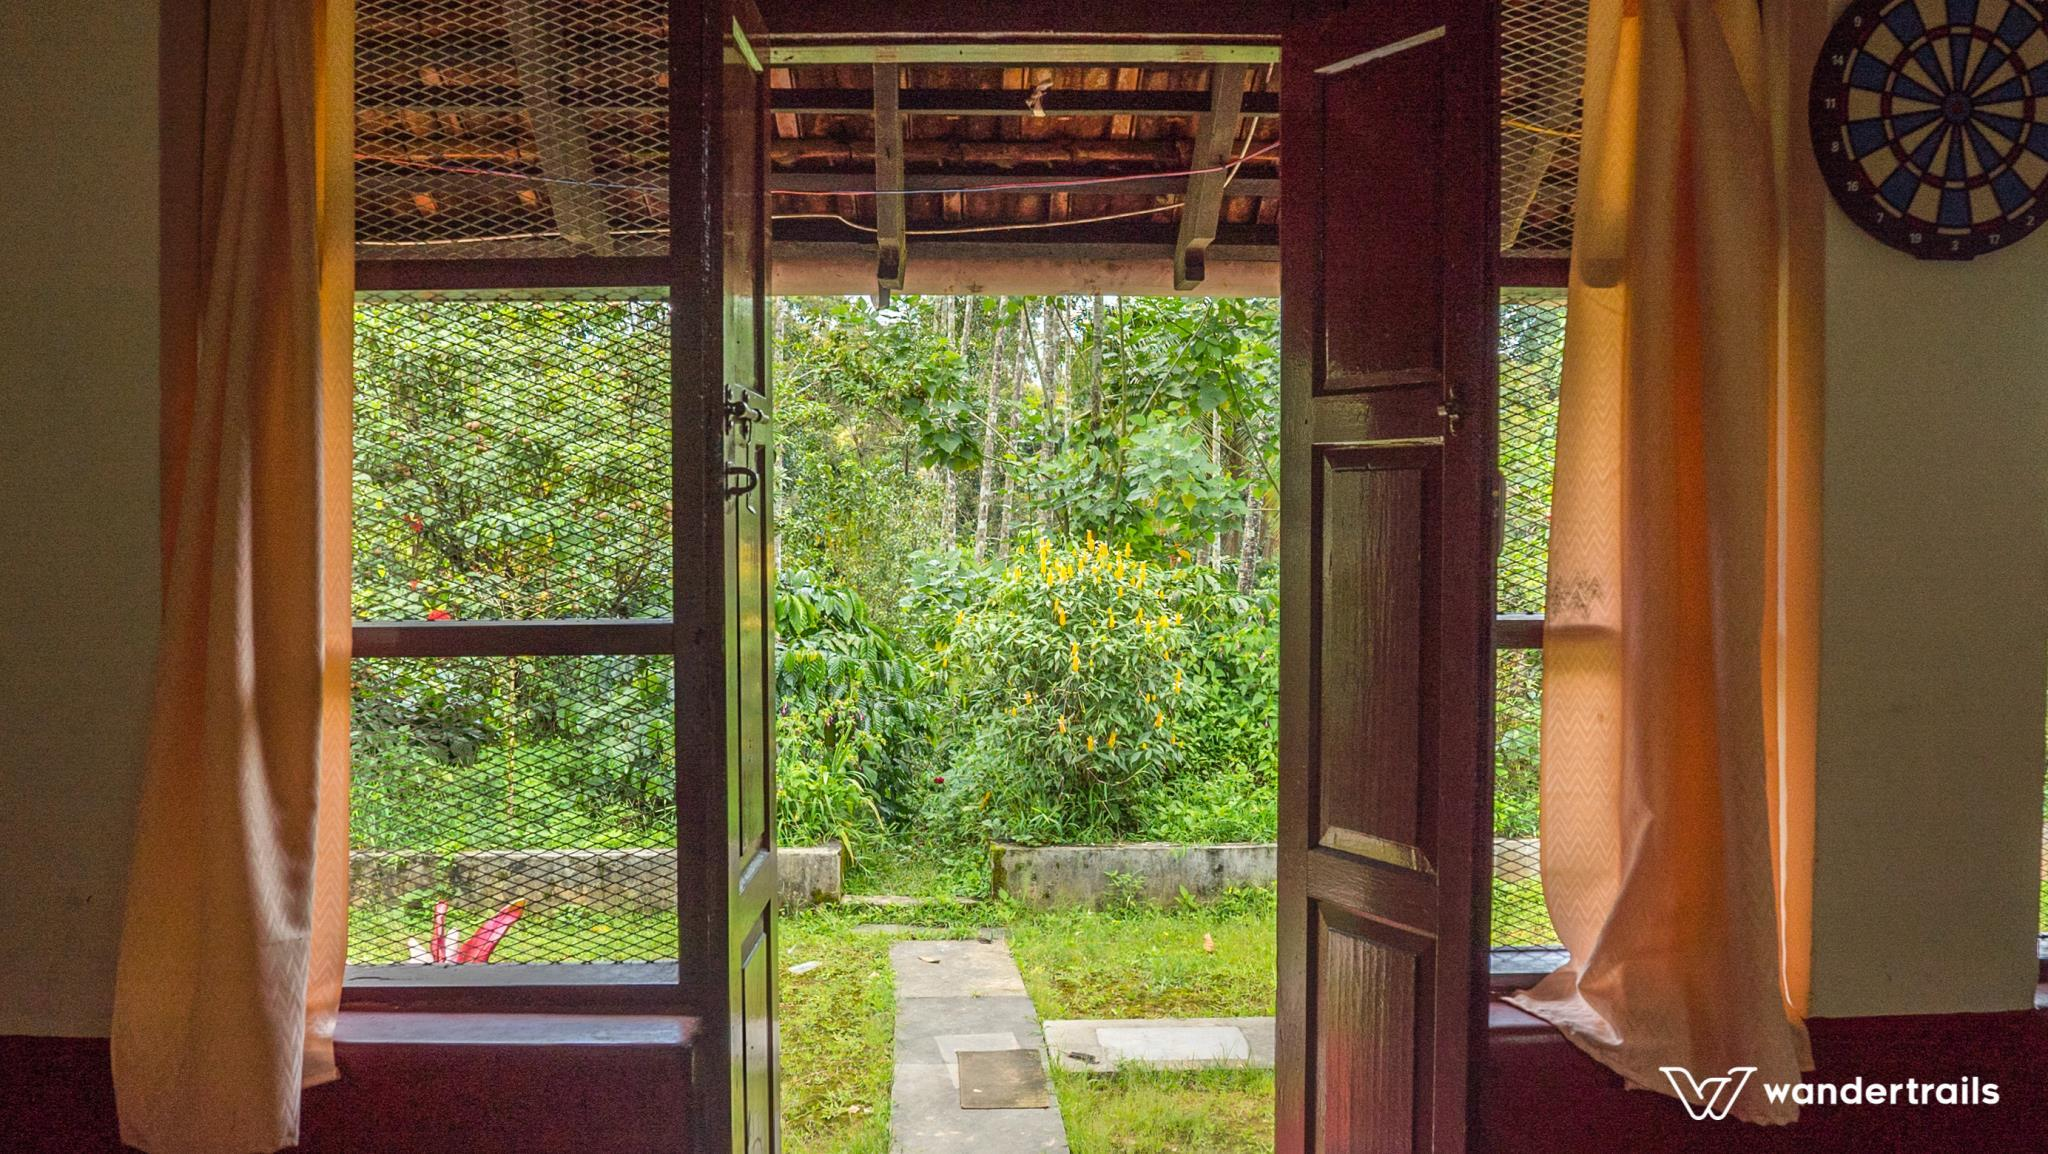 Rustic Vibes Homestay   A Wandertrails Stay